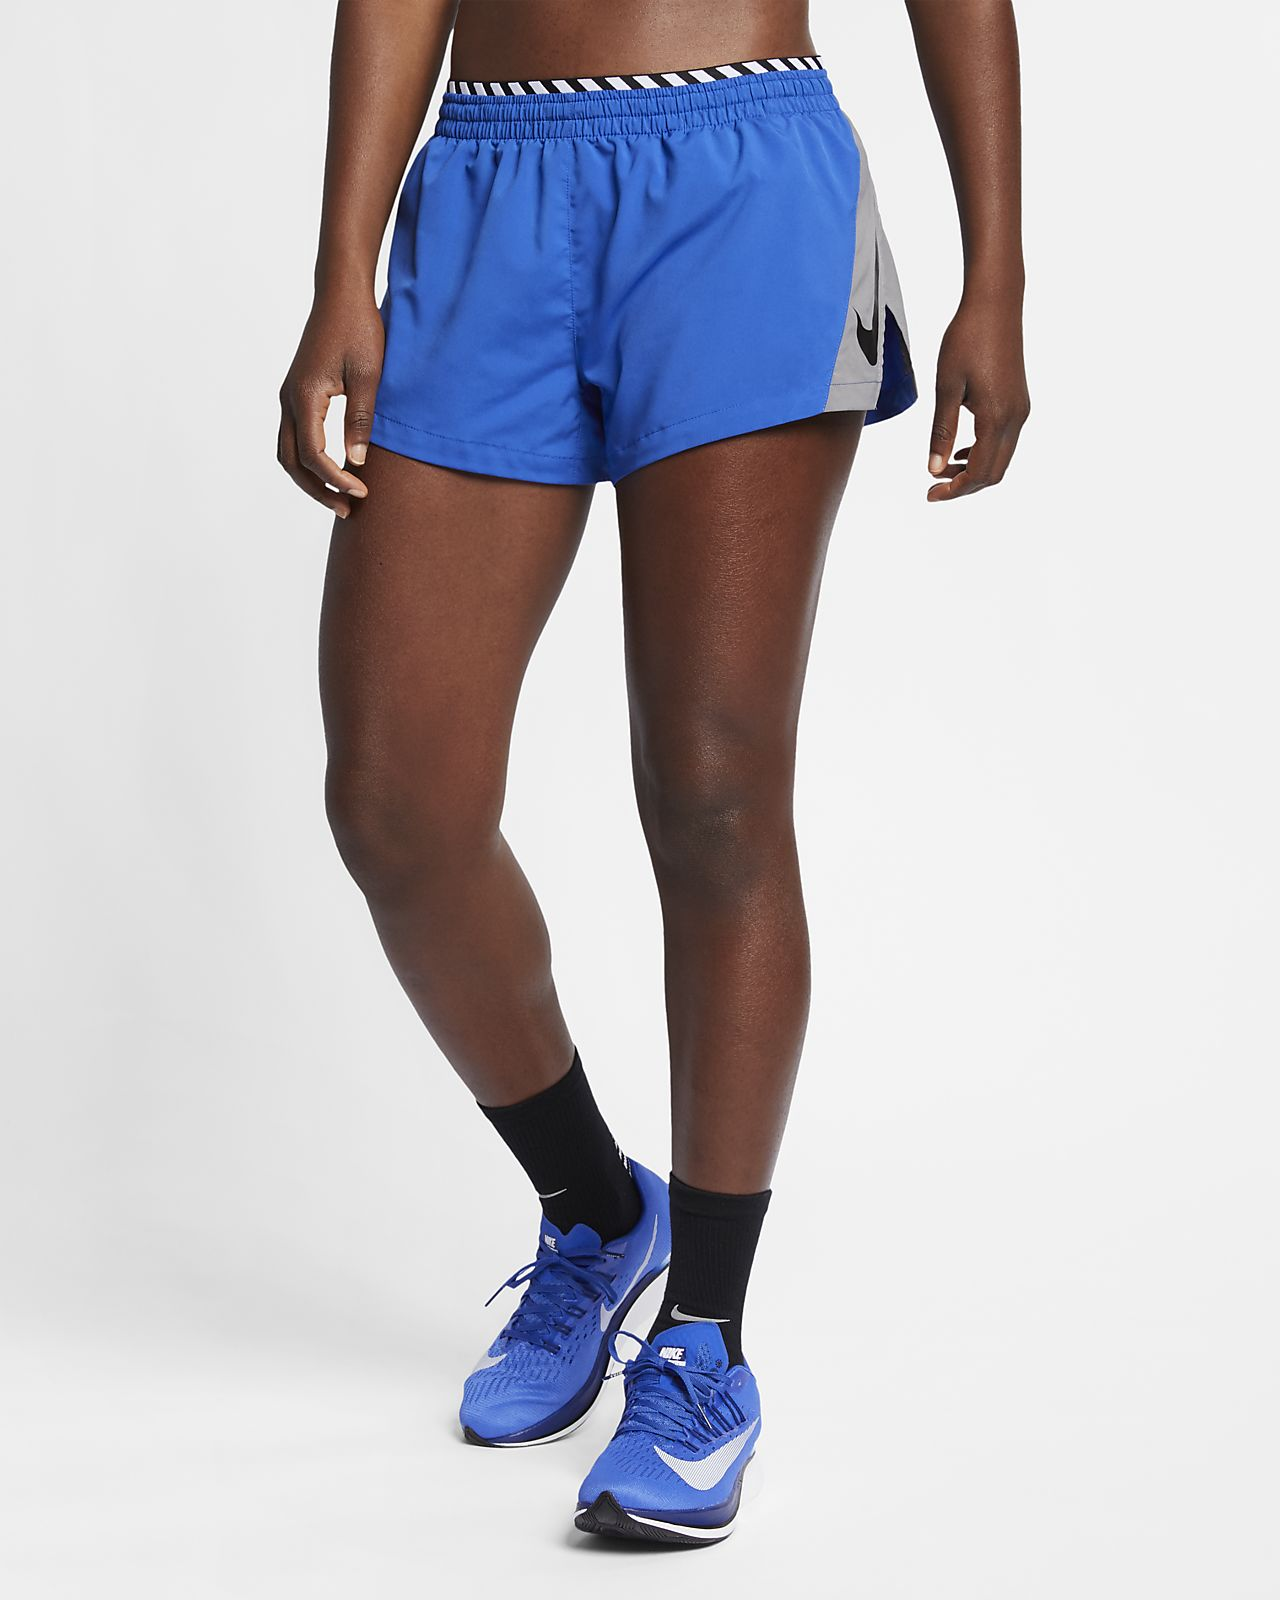 262a02883114 Low Resolution Nike Elevate Women s Running Shorts Nike Elevate Women s Running  Shorts